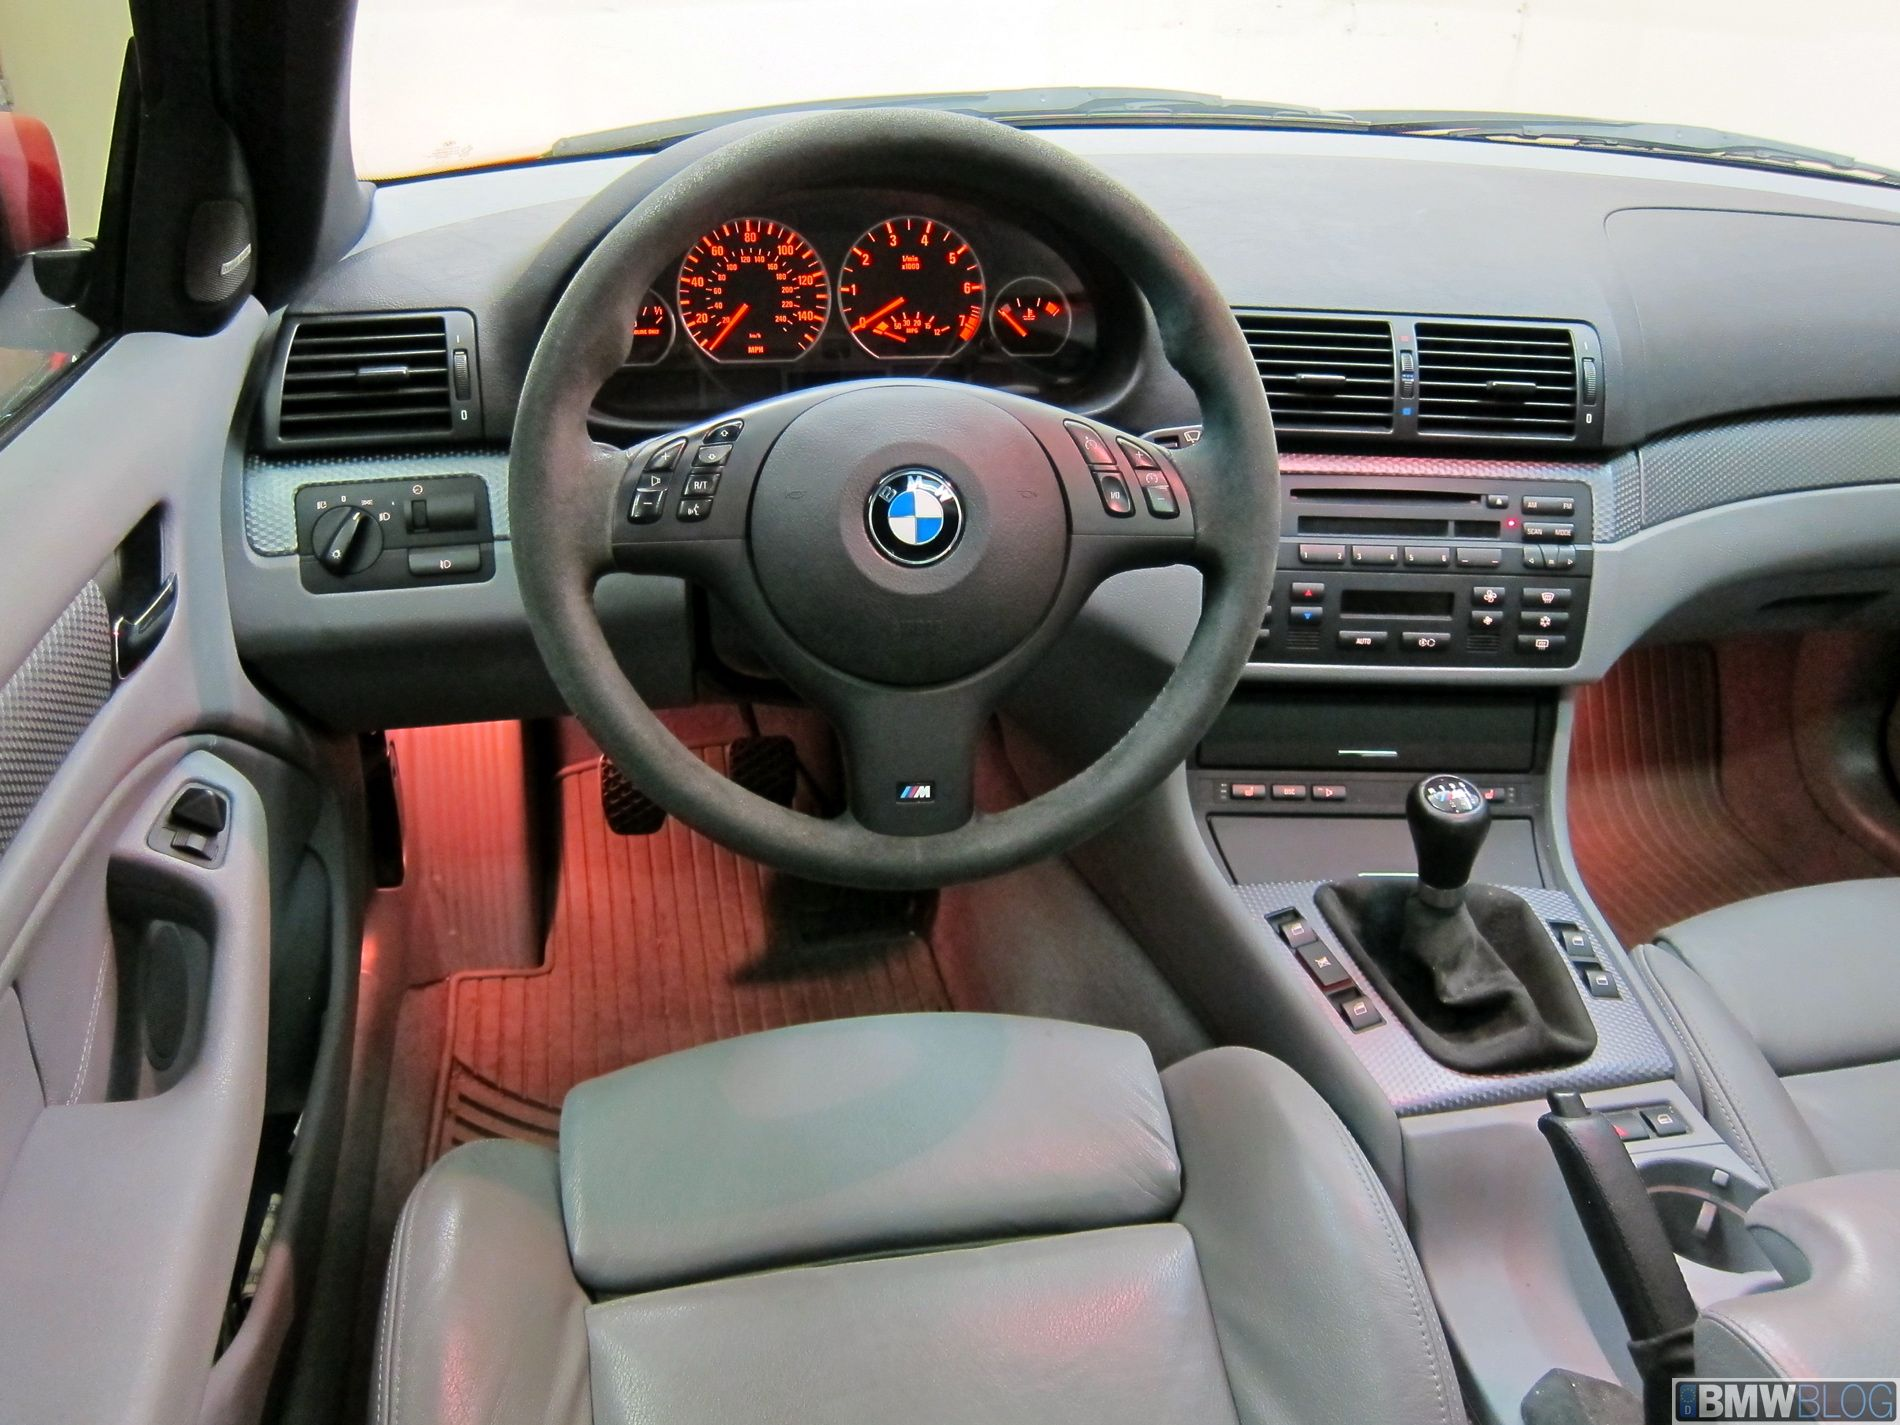 Bmw 330cic Zhp Interior This Is Exactly What Mine Looked Like Had Many Cars I Liked Or Loved